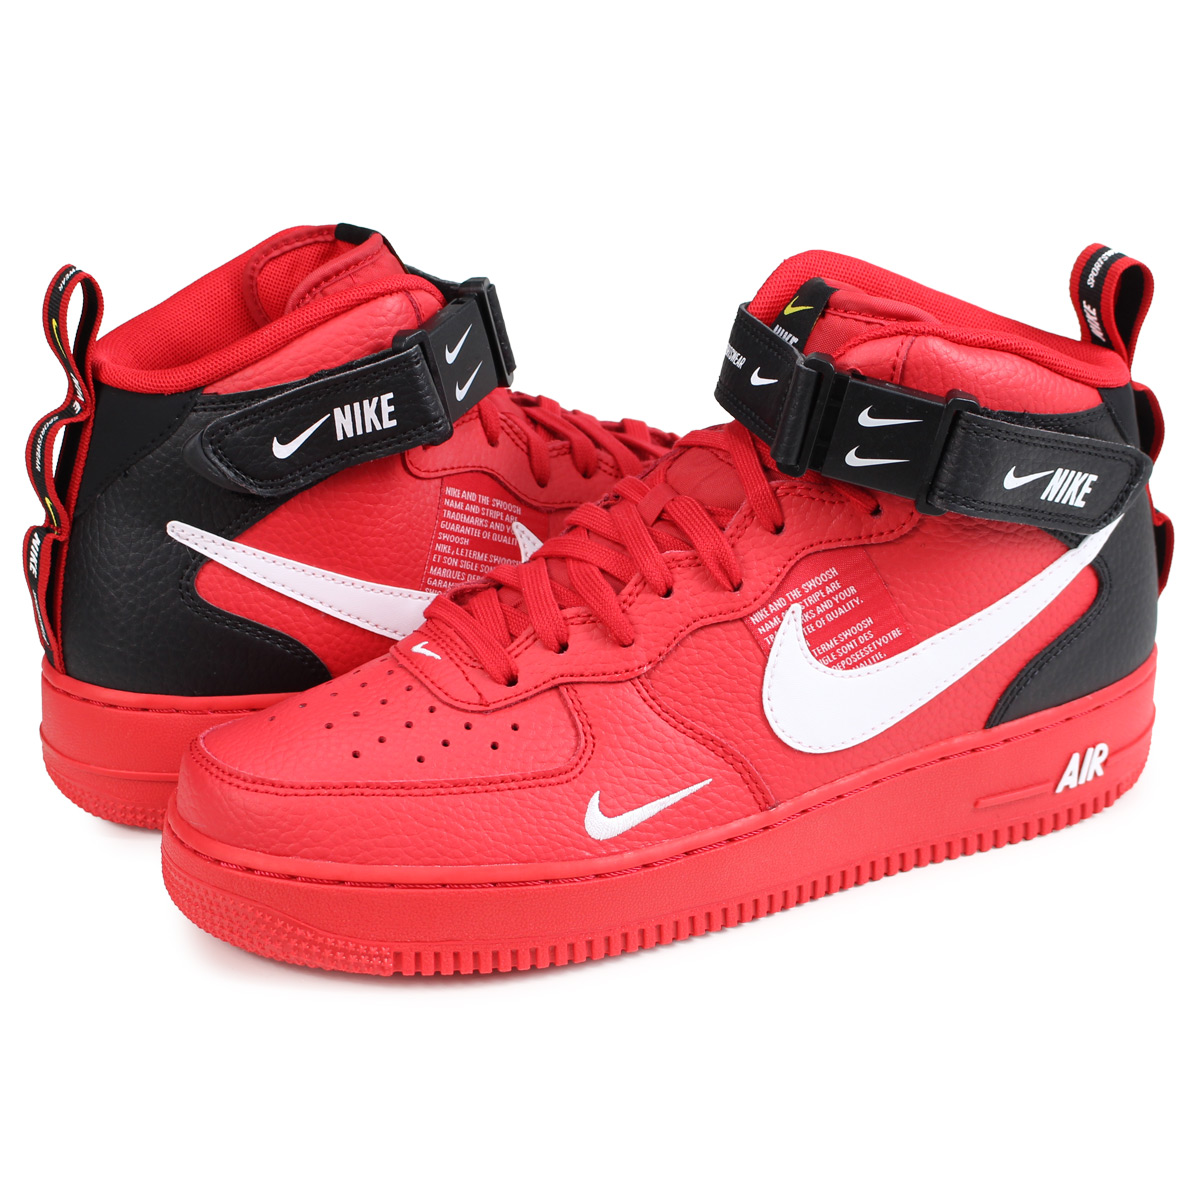 NIKE Air Force 1 Mid 07 Lv8 Mens Trainers Red Black 10 UK